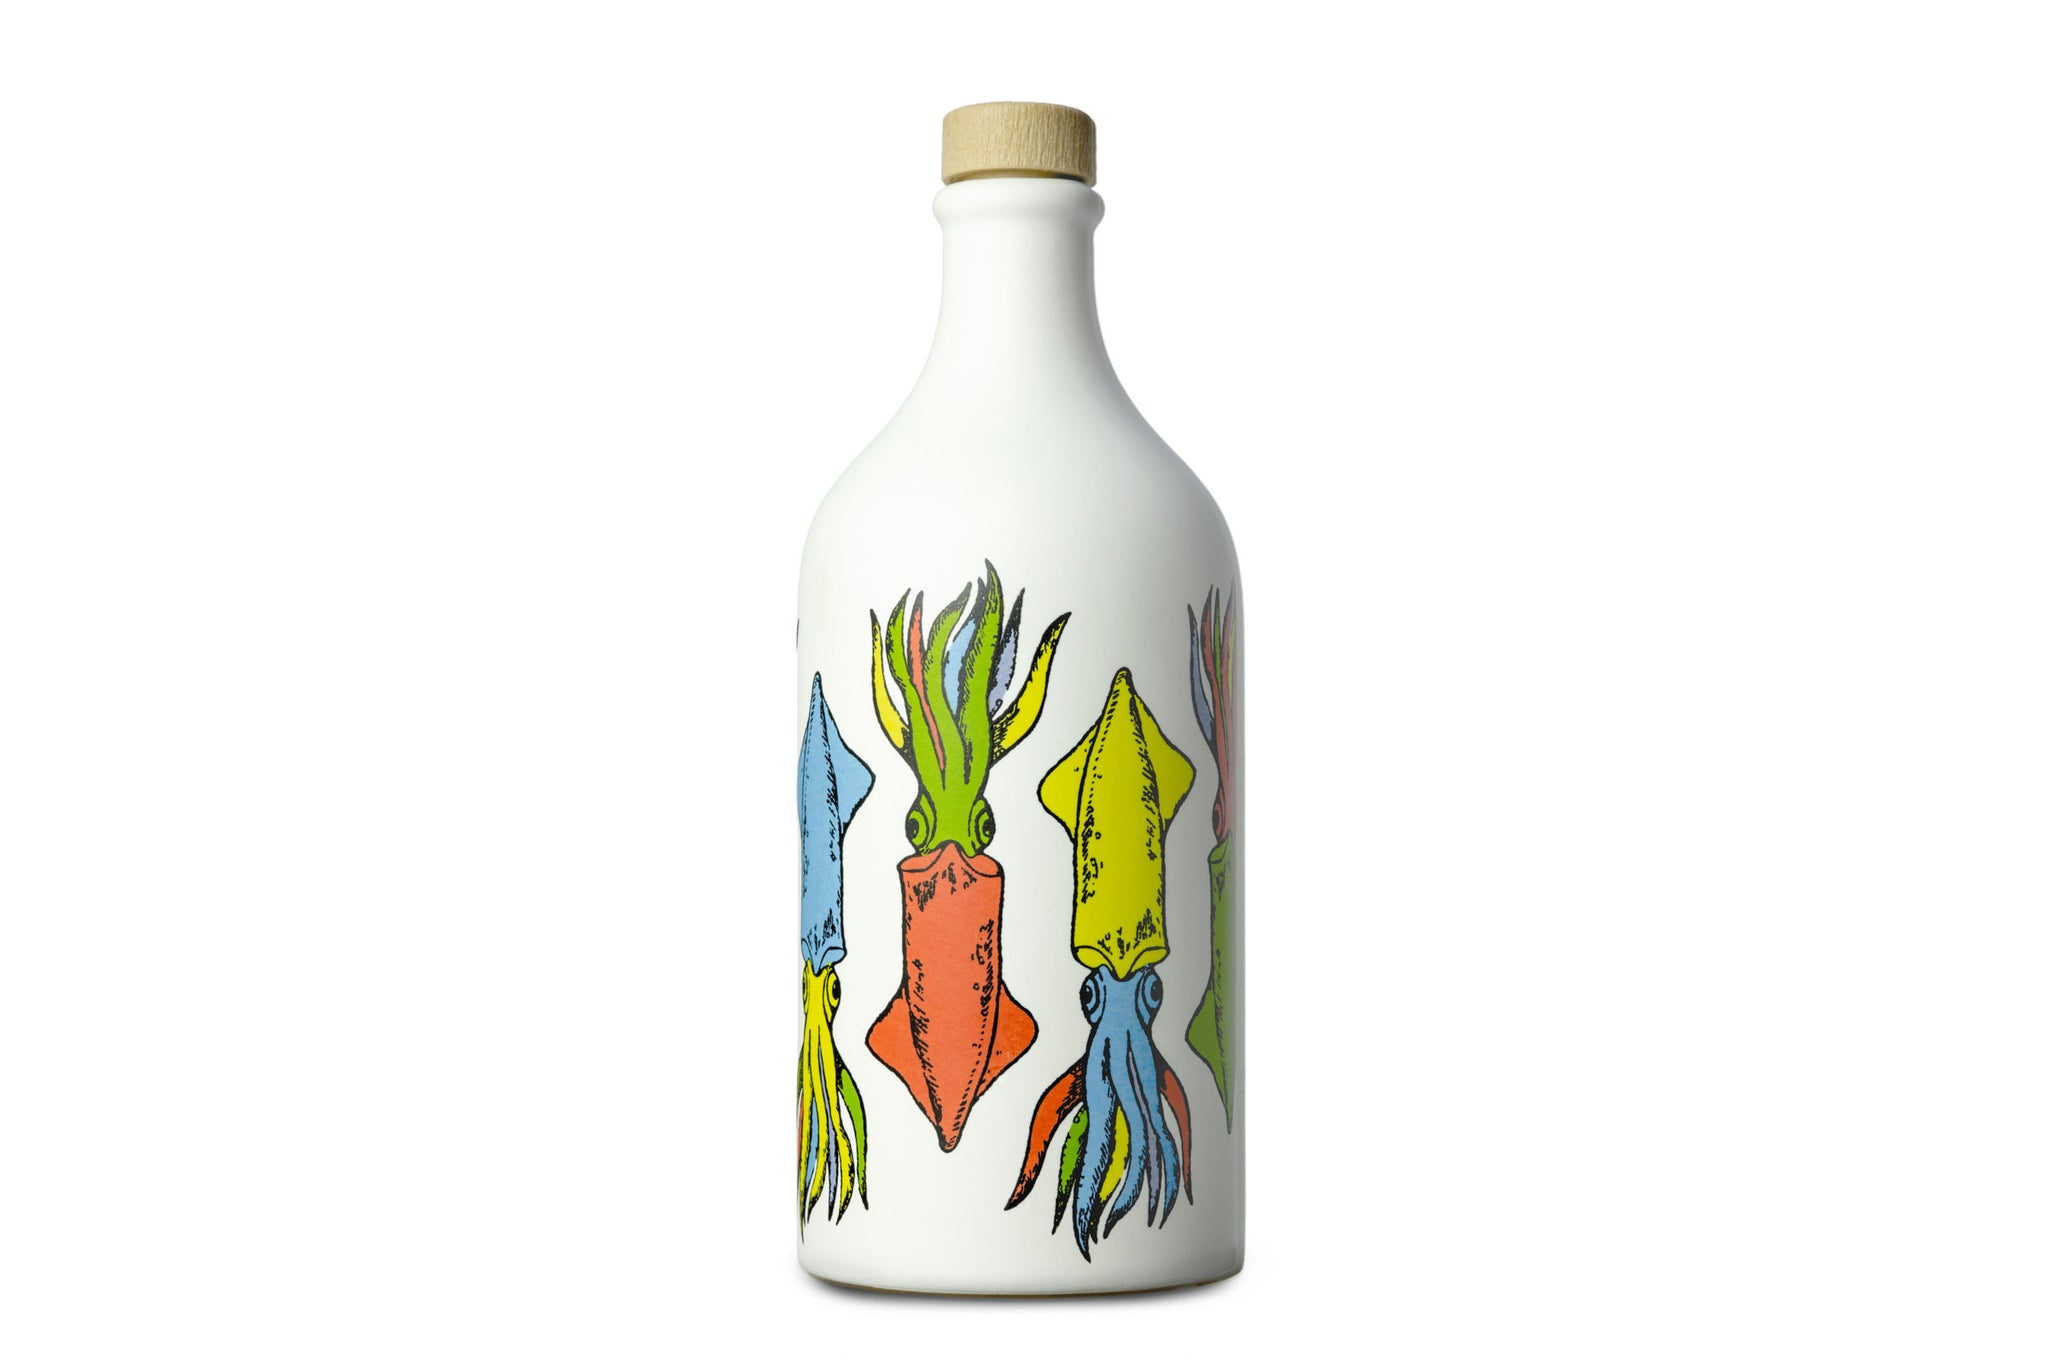 Frantoio Muraglia Intense Extra Virgin olive oil in handmade and painted ceramic bottles | Pop Art Collection Cuttlefish